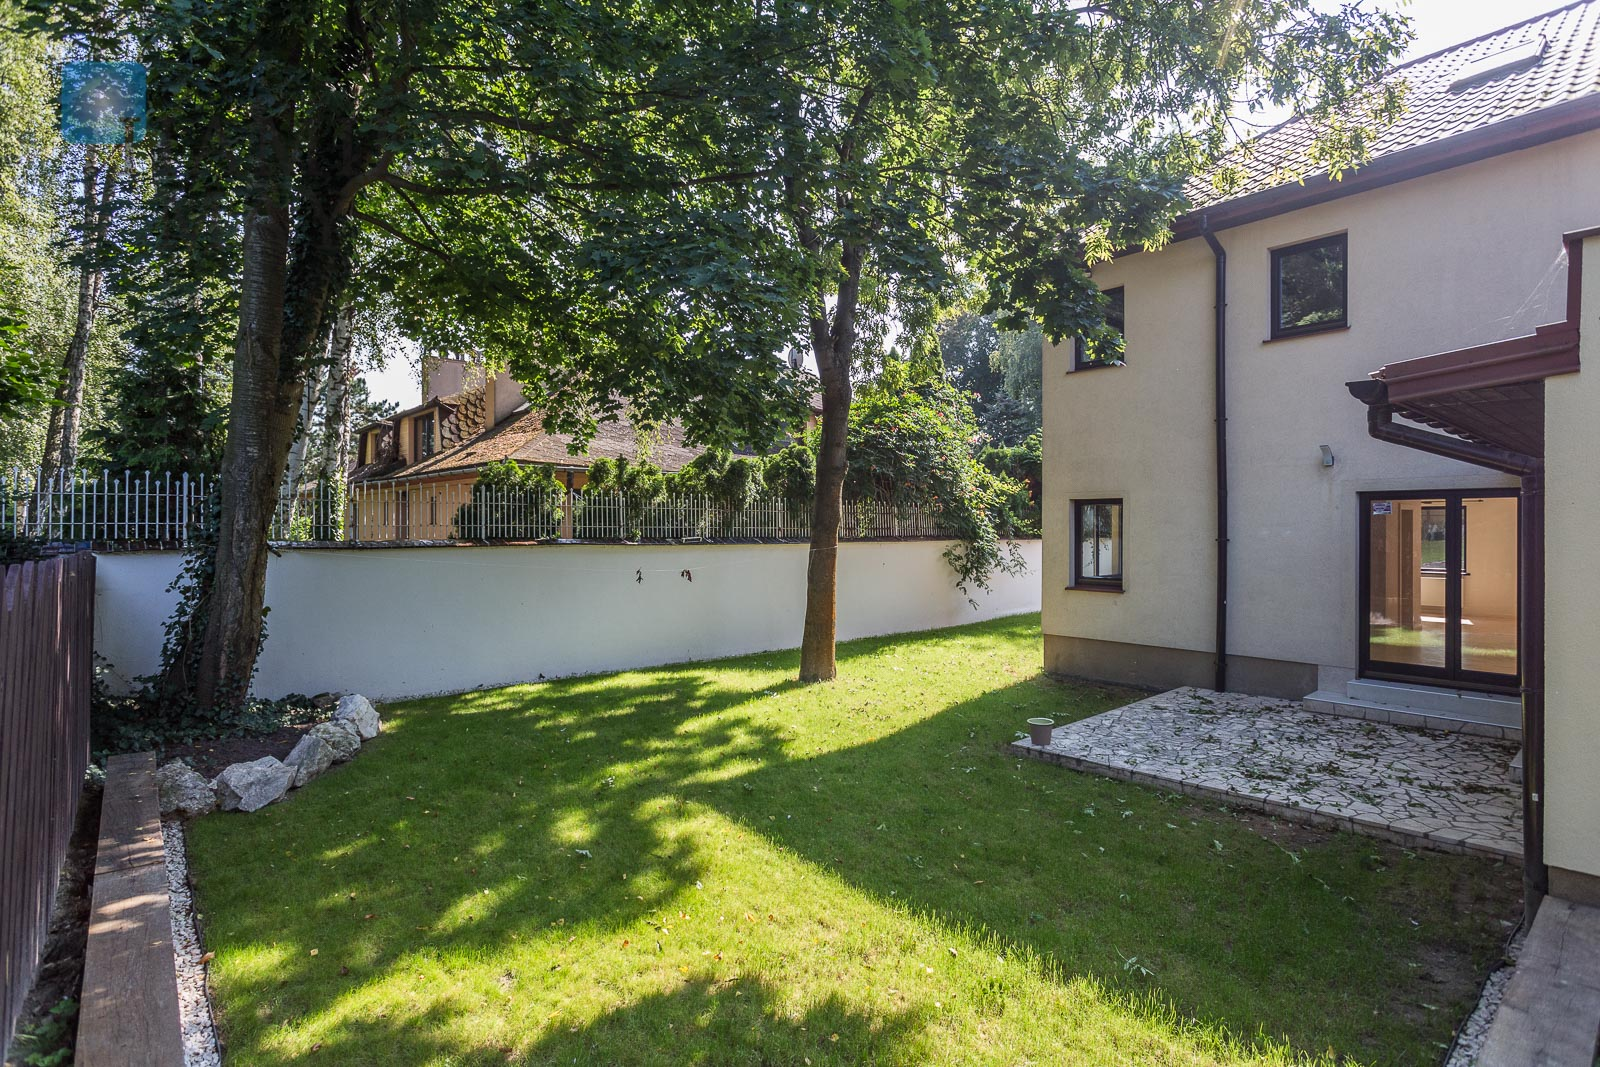 House in a great location, in Wola Justowska, away from the heavy traffic areas Krakow for rent